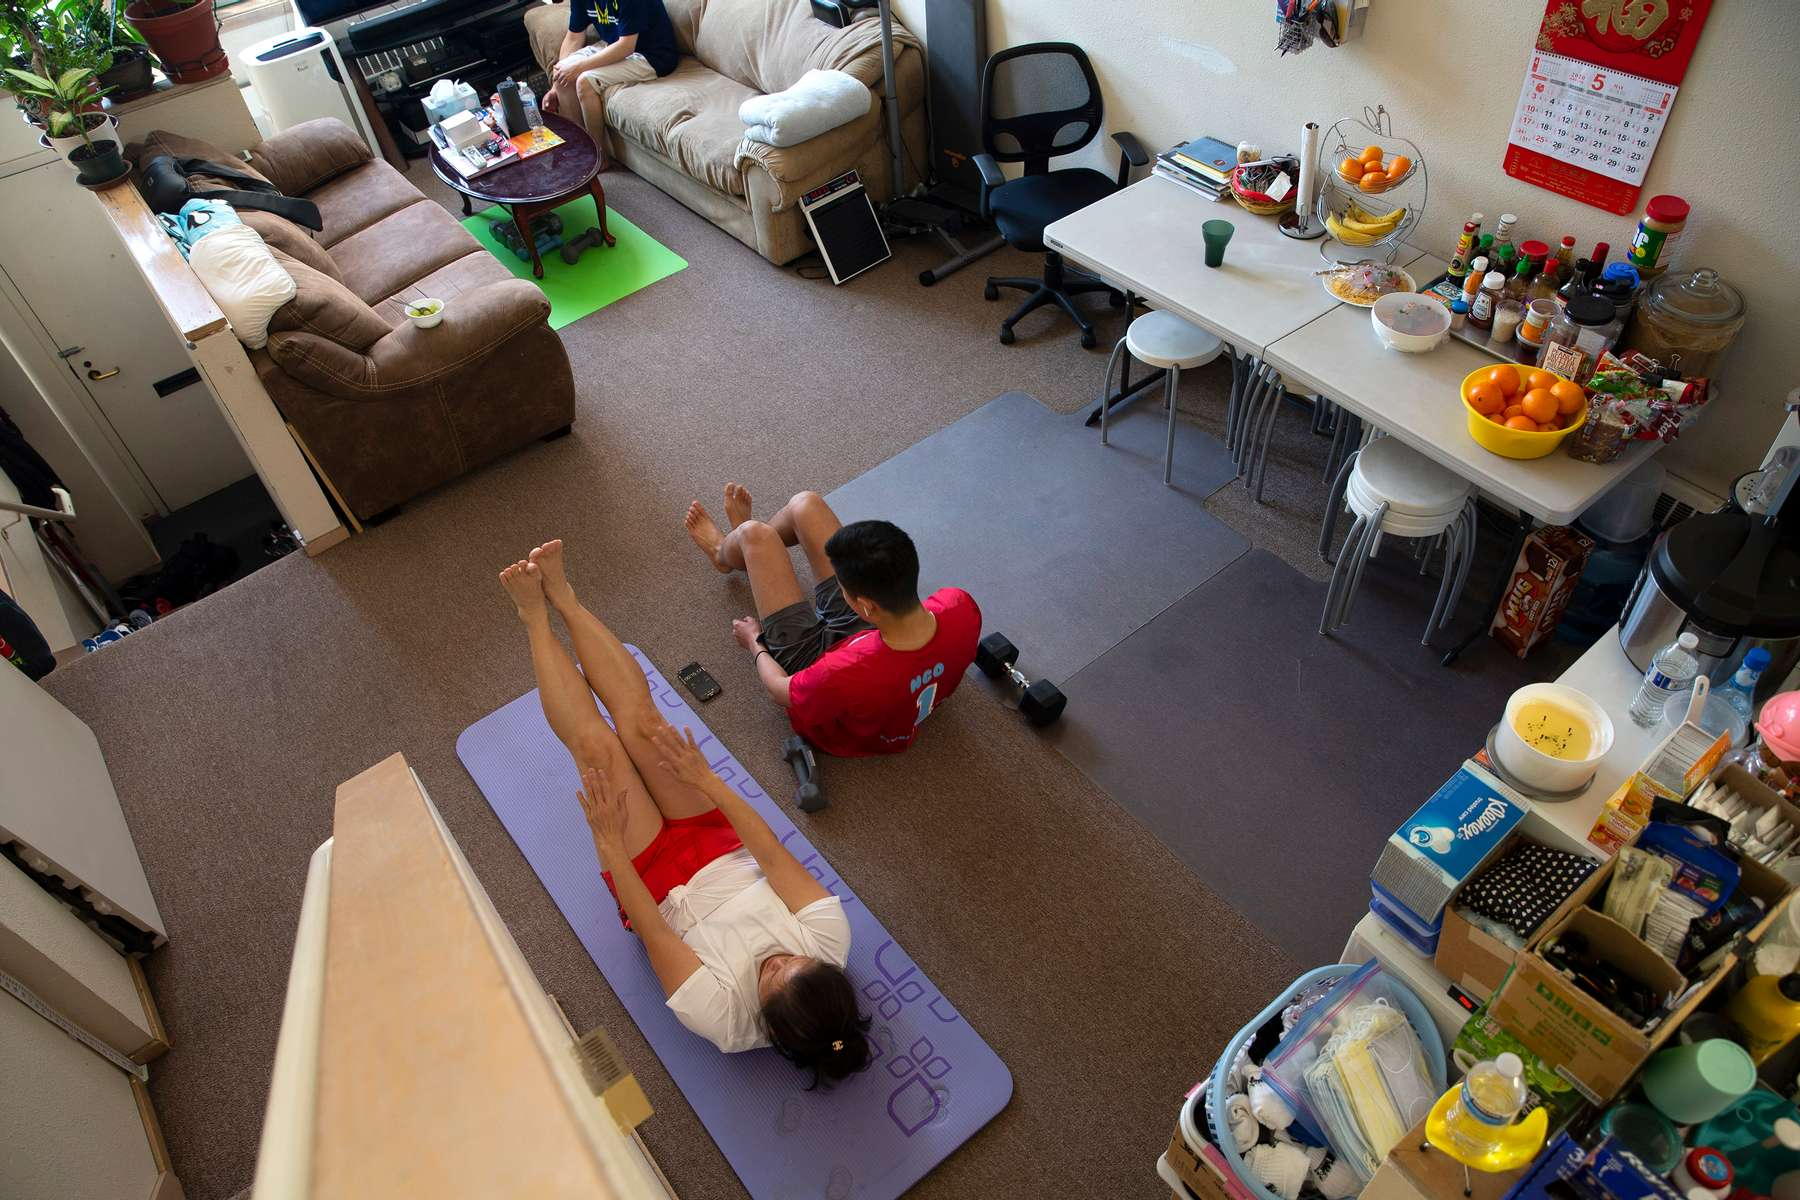 Tony Ngo, 20, a student at Carleton College, works out with his mother in his parents living room in Seattle, Wash. on May 7, 2020.  Ngo moved back in with his parents after his school closed because of the Covid-19 pandemic and said it brought the family closer together. (photo by Karen Ducey)